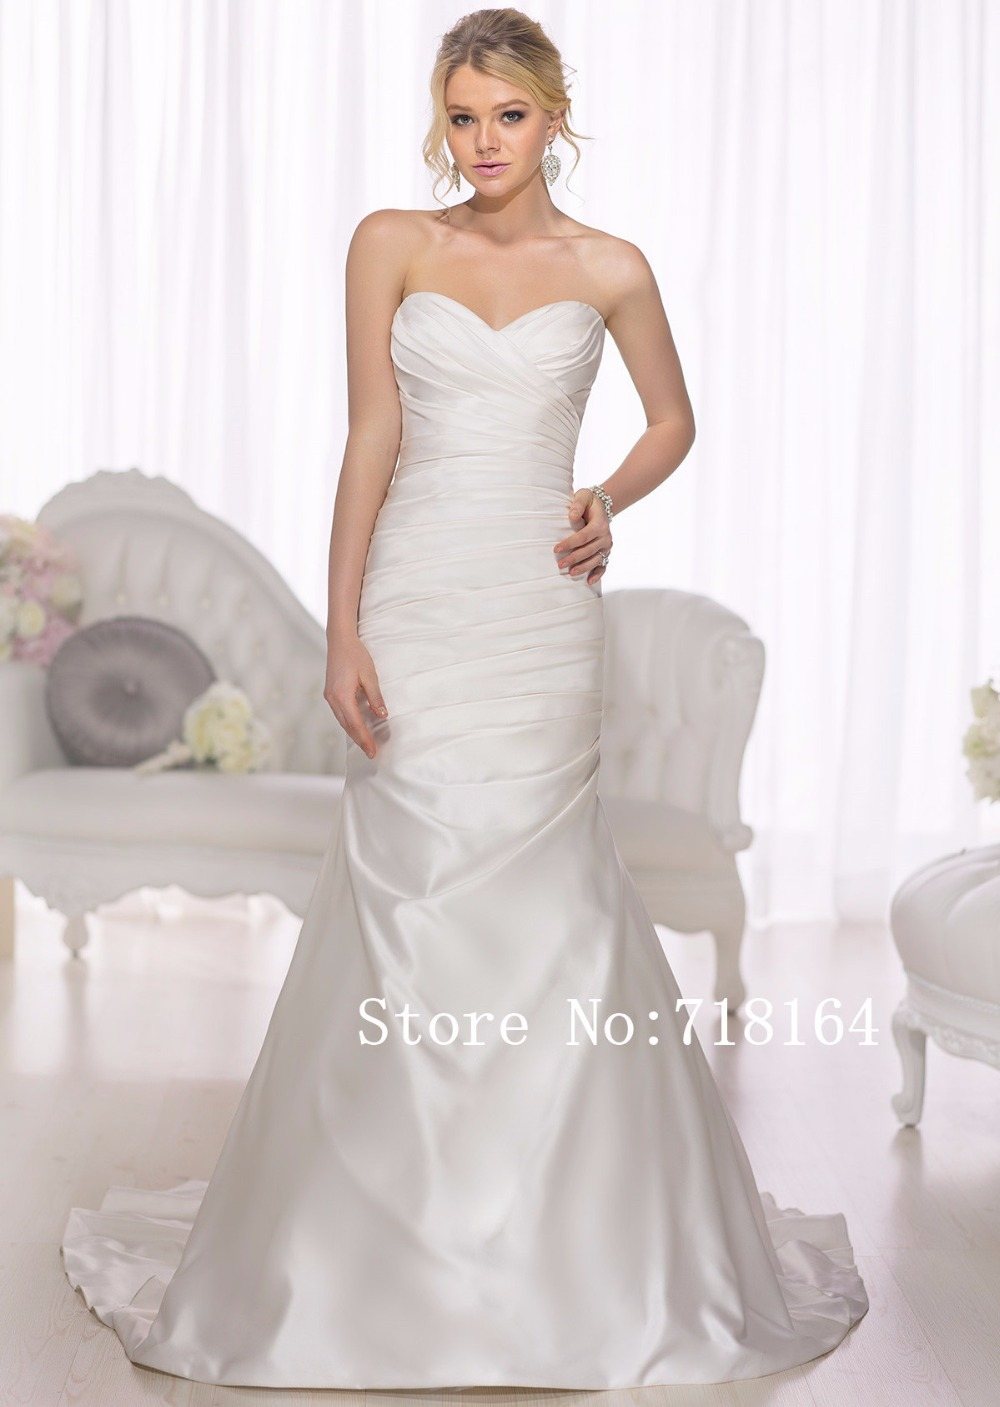 Aliexpress.com : Buy Country western cheap boda wedding dress satin ...